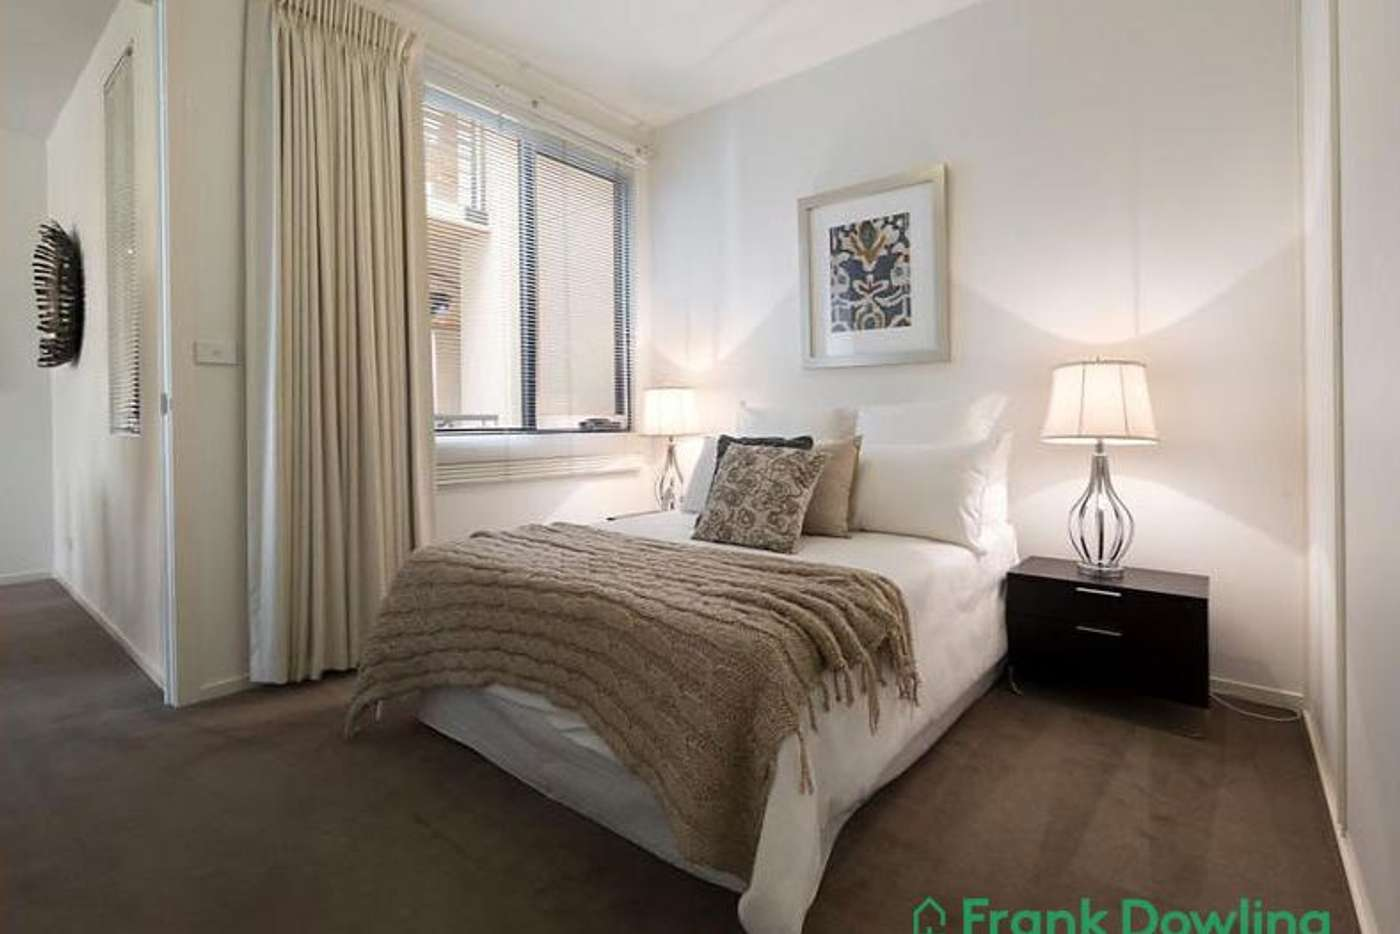 Fifth view of Homely apartment listing, 5/456 William St, West Melbourne VIC 3003